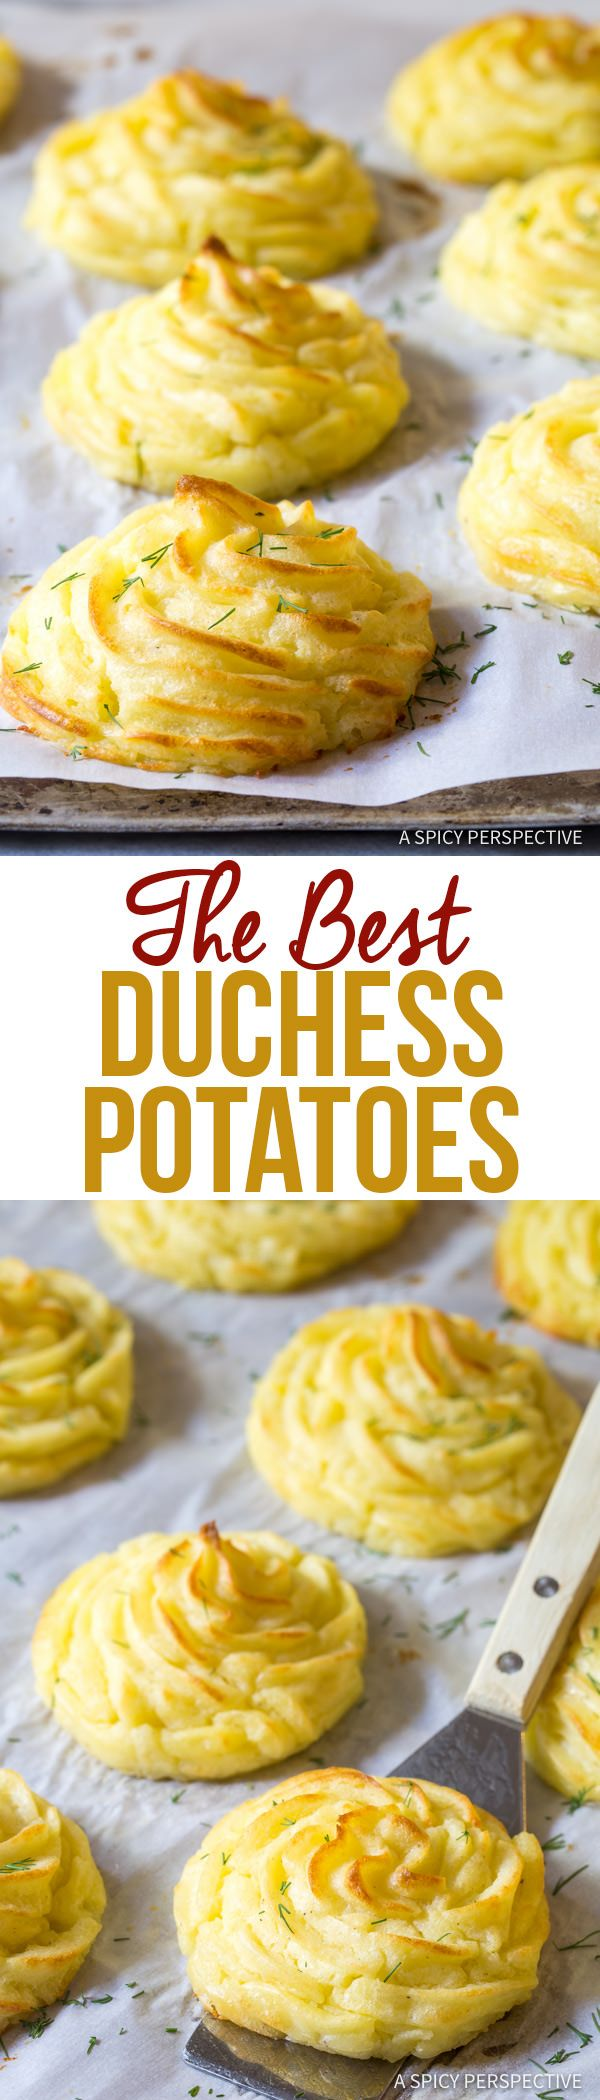 Best Ever Duchess Potatoes Recipe | ASpicyPerspective.com